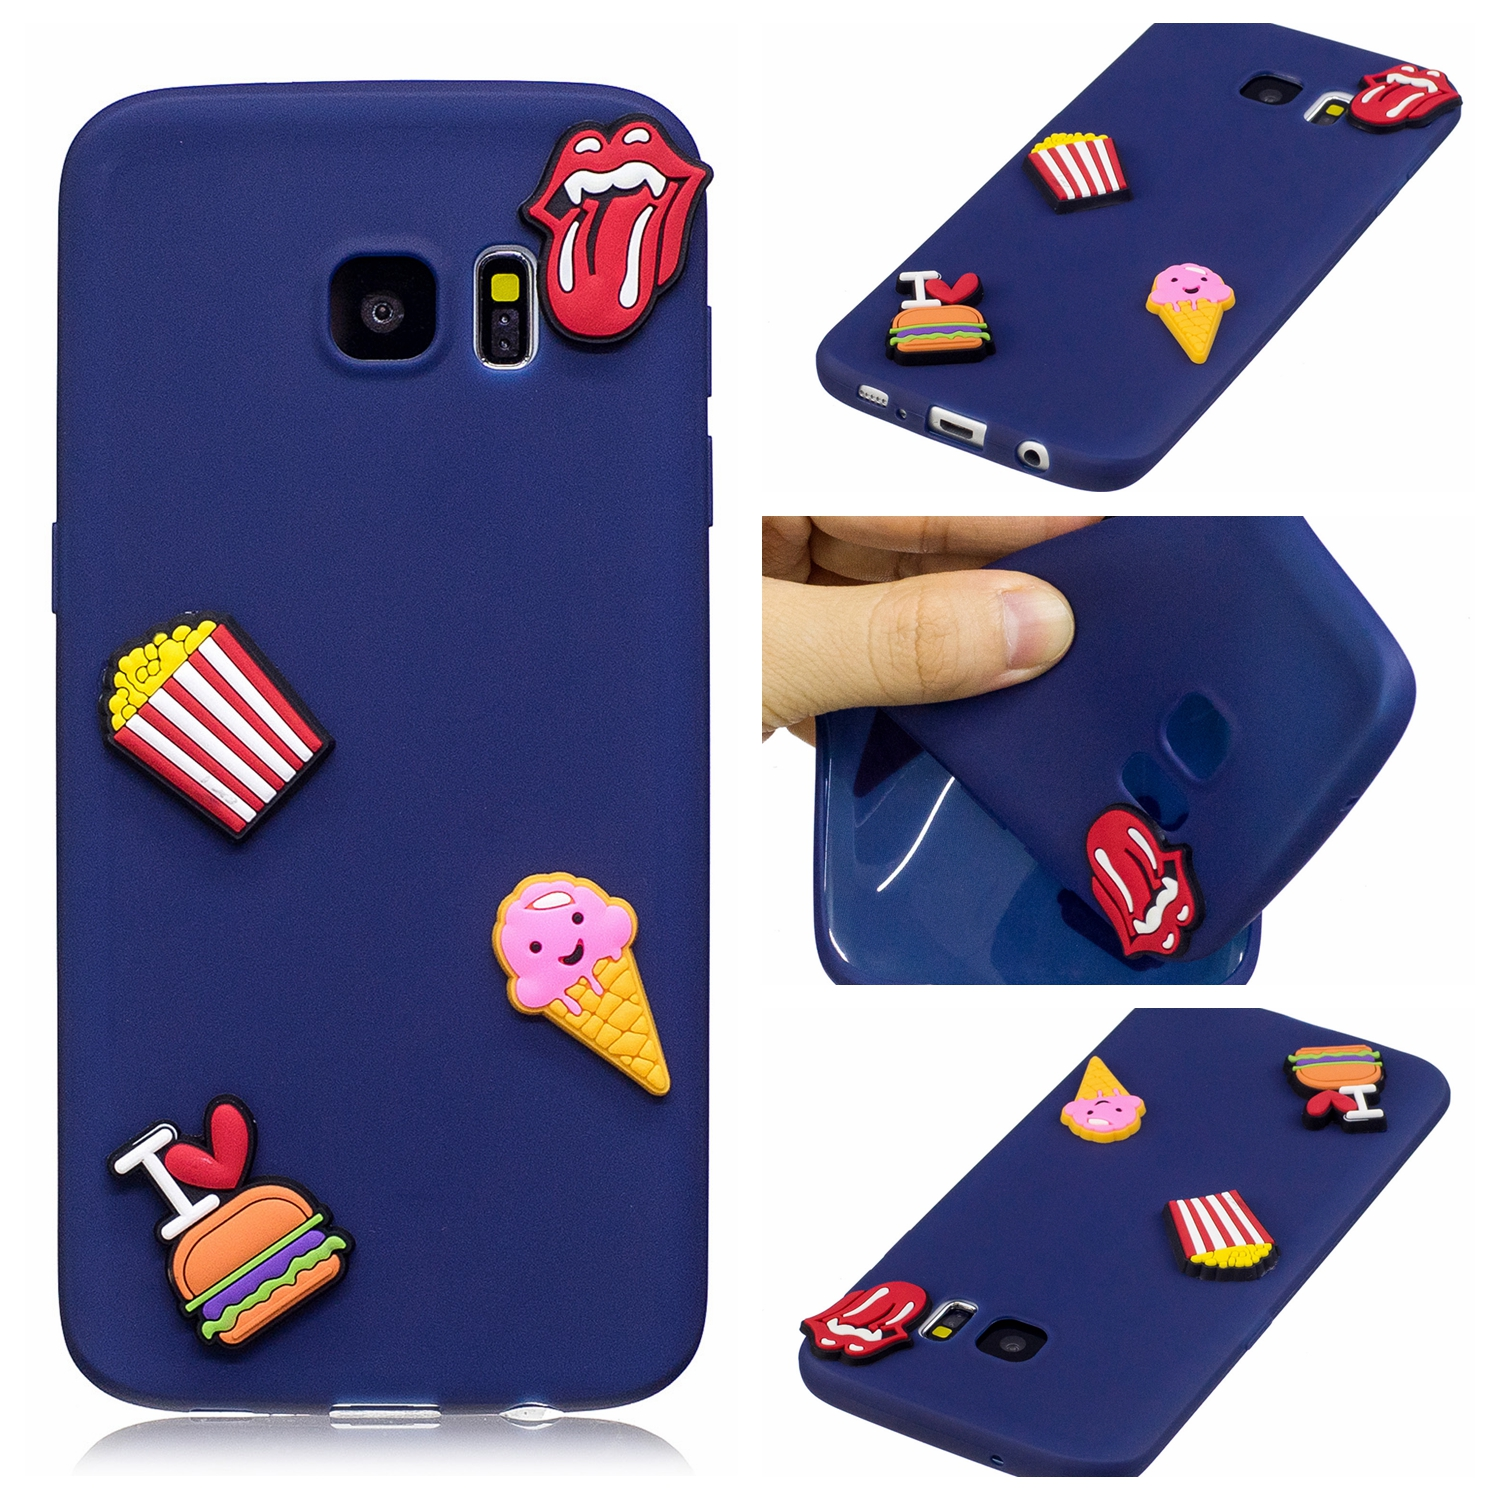 DIY TPU soft shell Silicone Case for Samsung Galaxy S 7 S7 7S G930F SM-G930F G930FD SM-G930FD Phone Case TPU Frame Core Cover